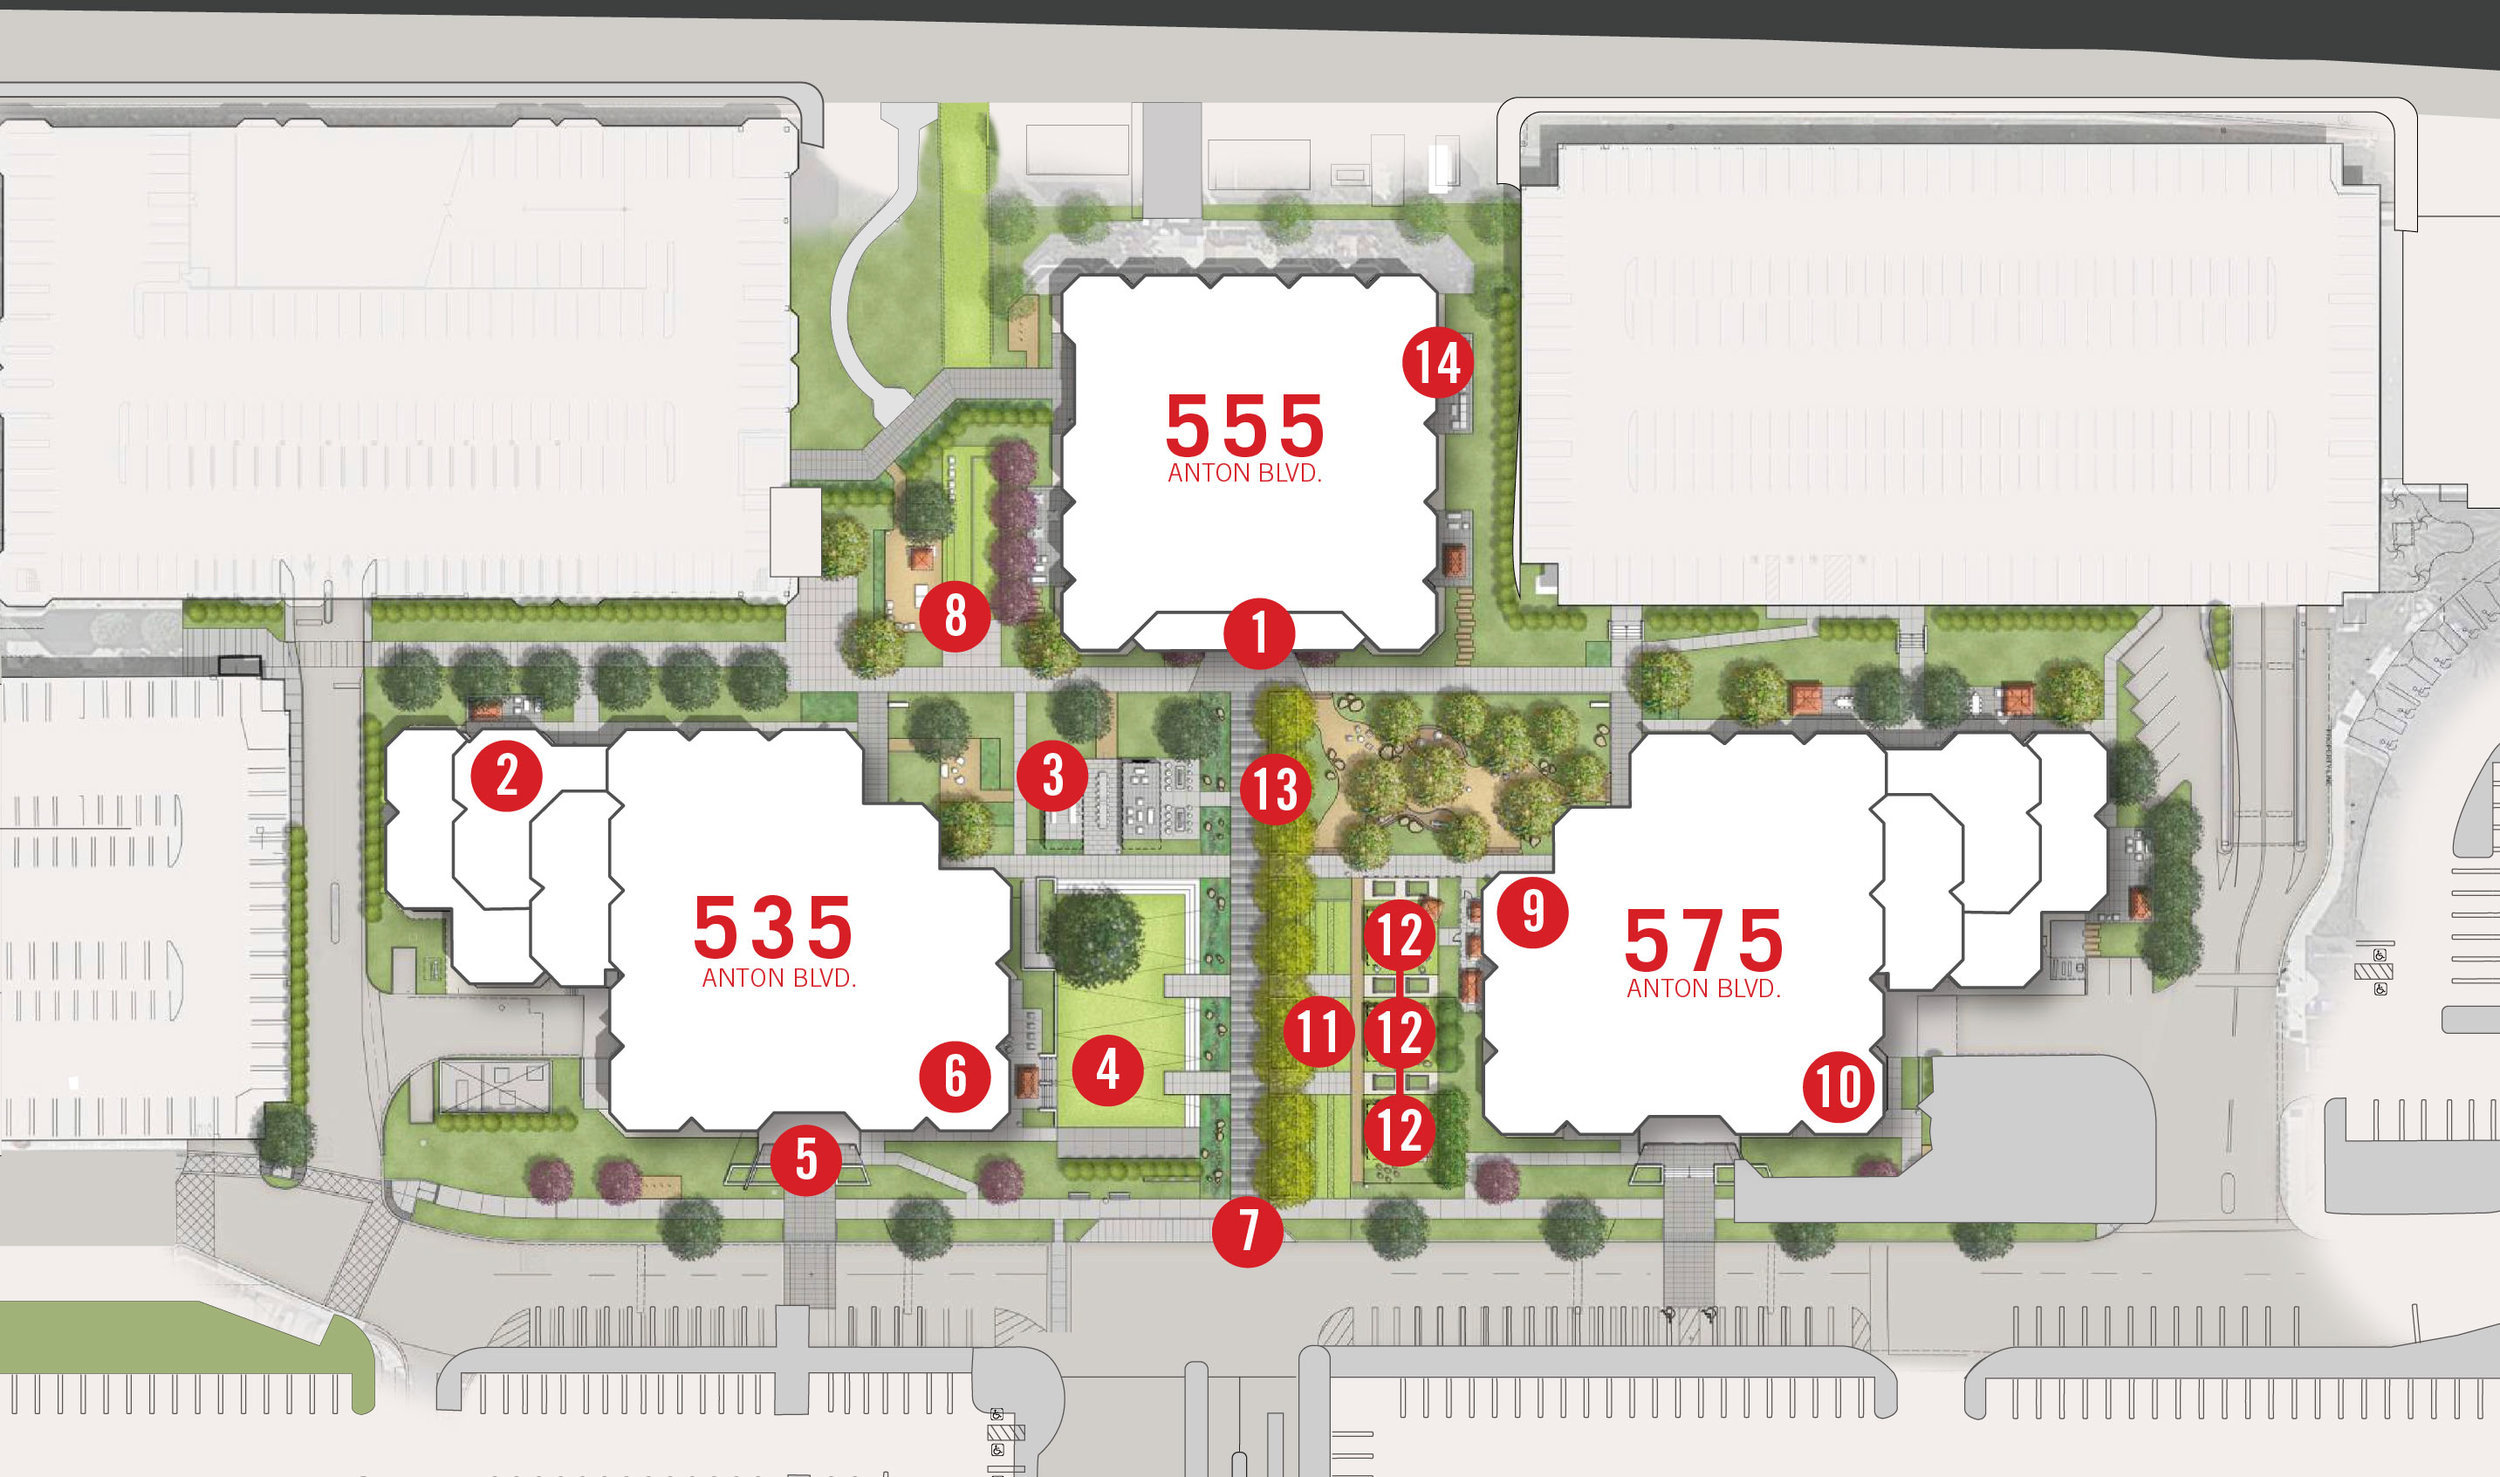 The-MET-Site-Plan-Parking-01.jpg